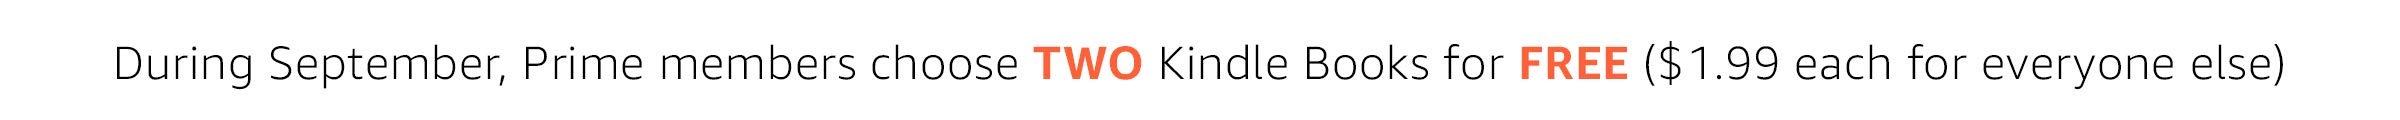 All September, customers can choose TWO Kindle Books for $1.99 each